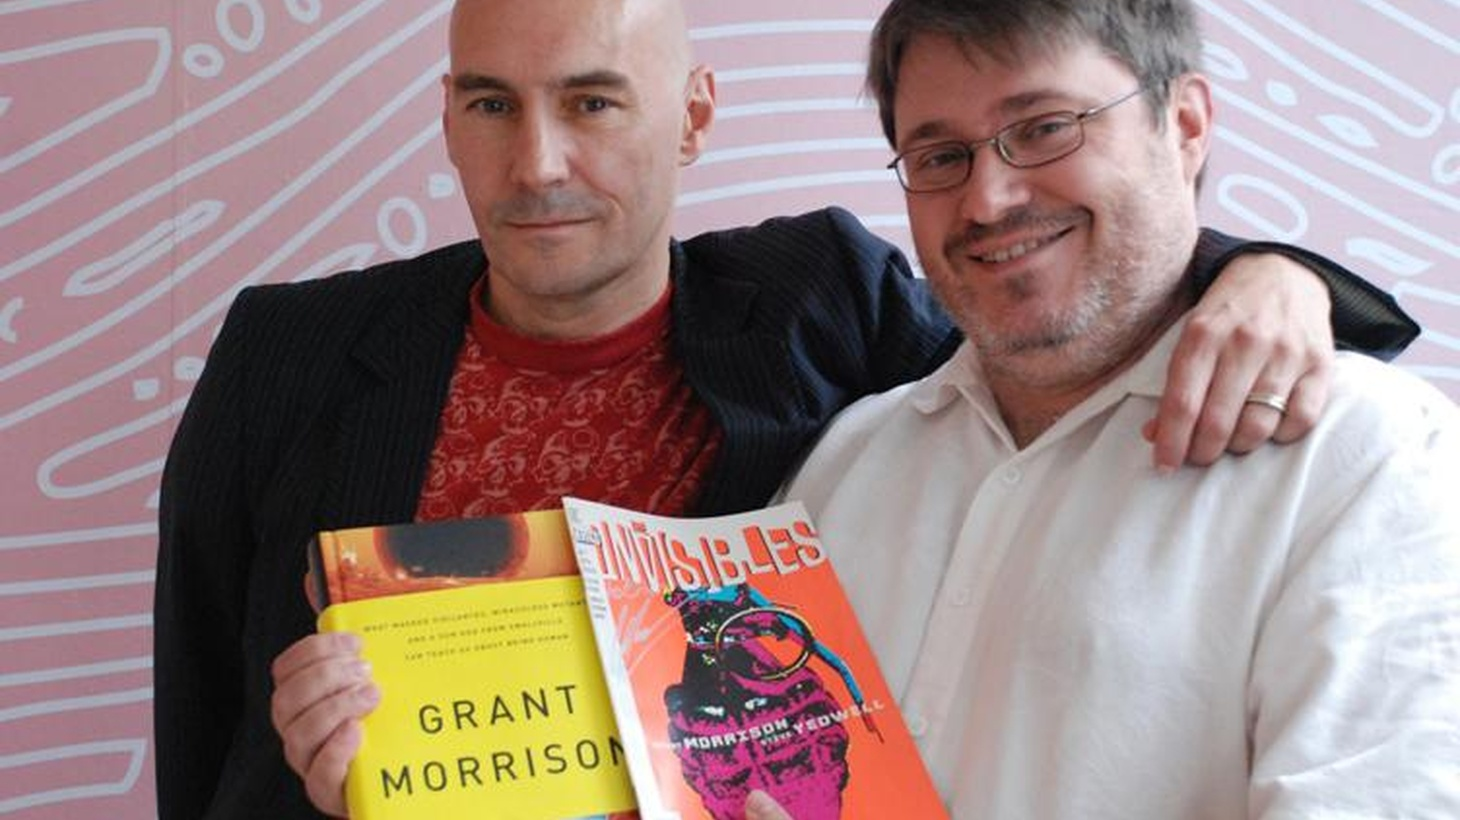 Grant Morrison is a renowned writer who explores the underbelly of pop culture and modern society through the prism of comic books. His music tastes are just as thoughtful, with a track that proves parodies can be as good as the original, some psychedelic hip-hop and a song he considers the theme to his cult favorite comic series The Invisibles.